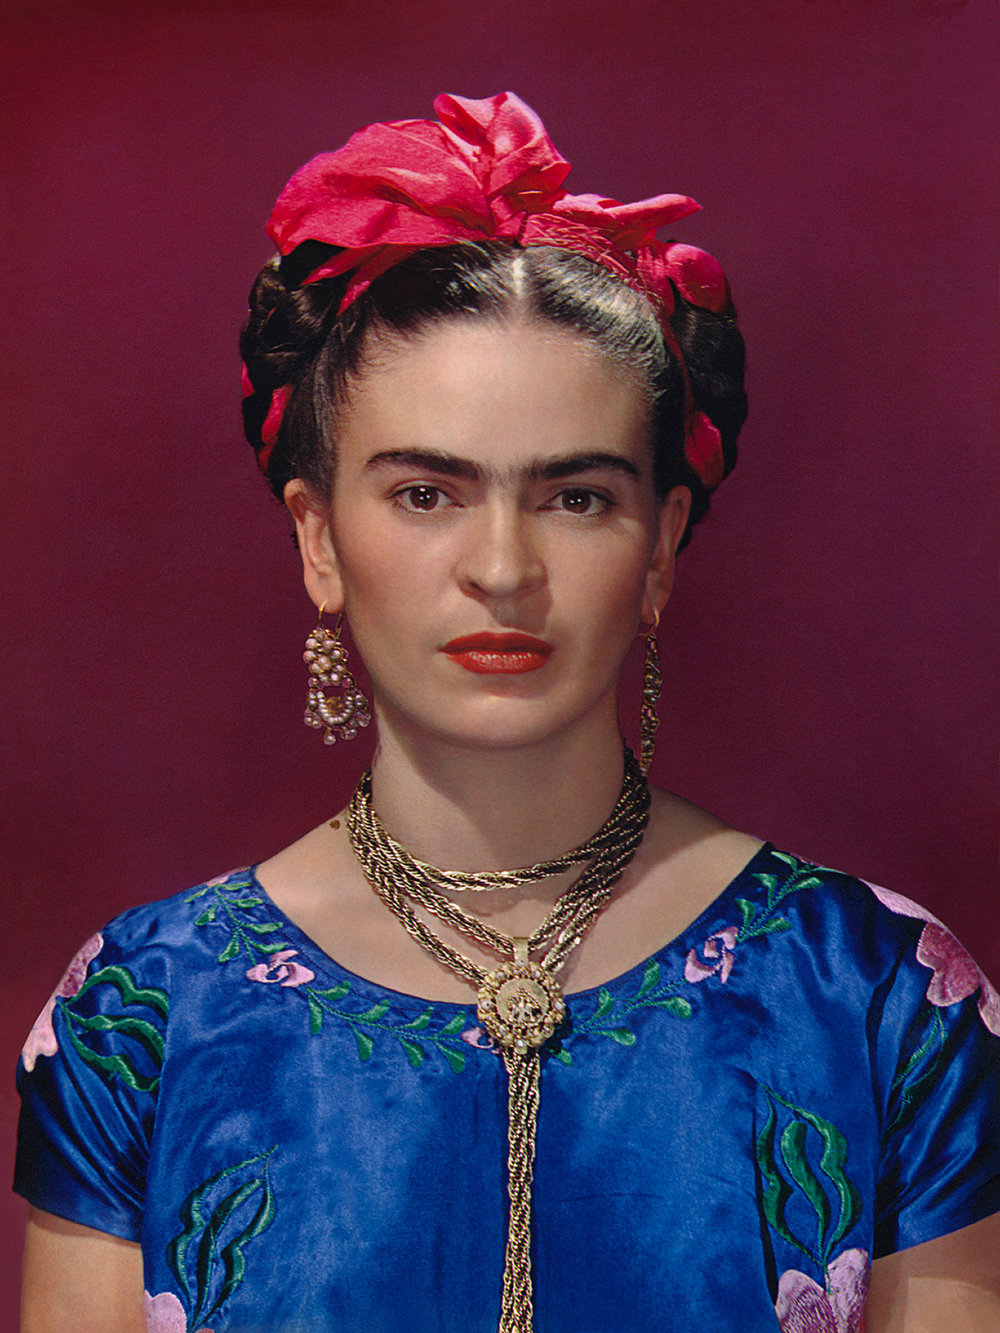 Nickolas Muray (1892-1965)  Frida with Blue Satin Blouse, New York,  1939 color carbon print ©Nickolas Muray Photo Archives courtesy of Etherton Gallery